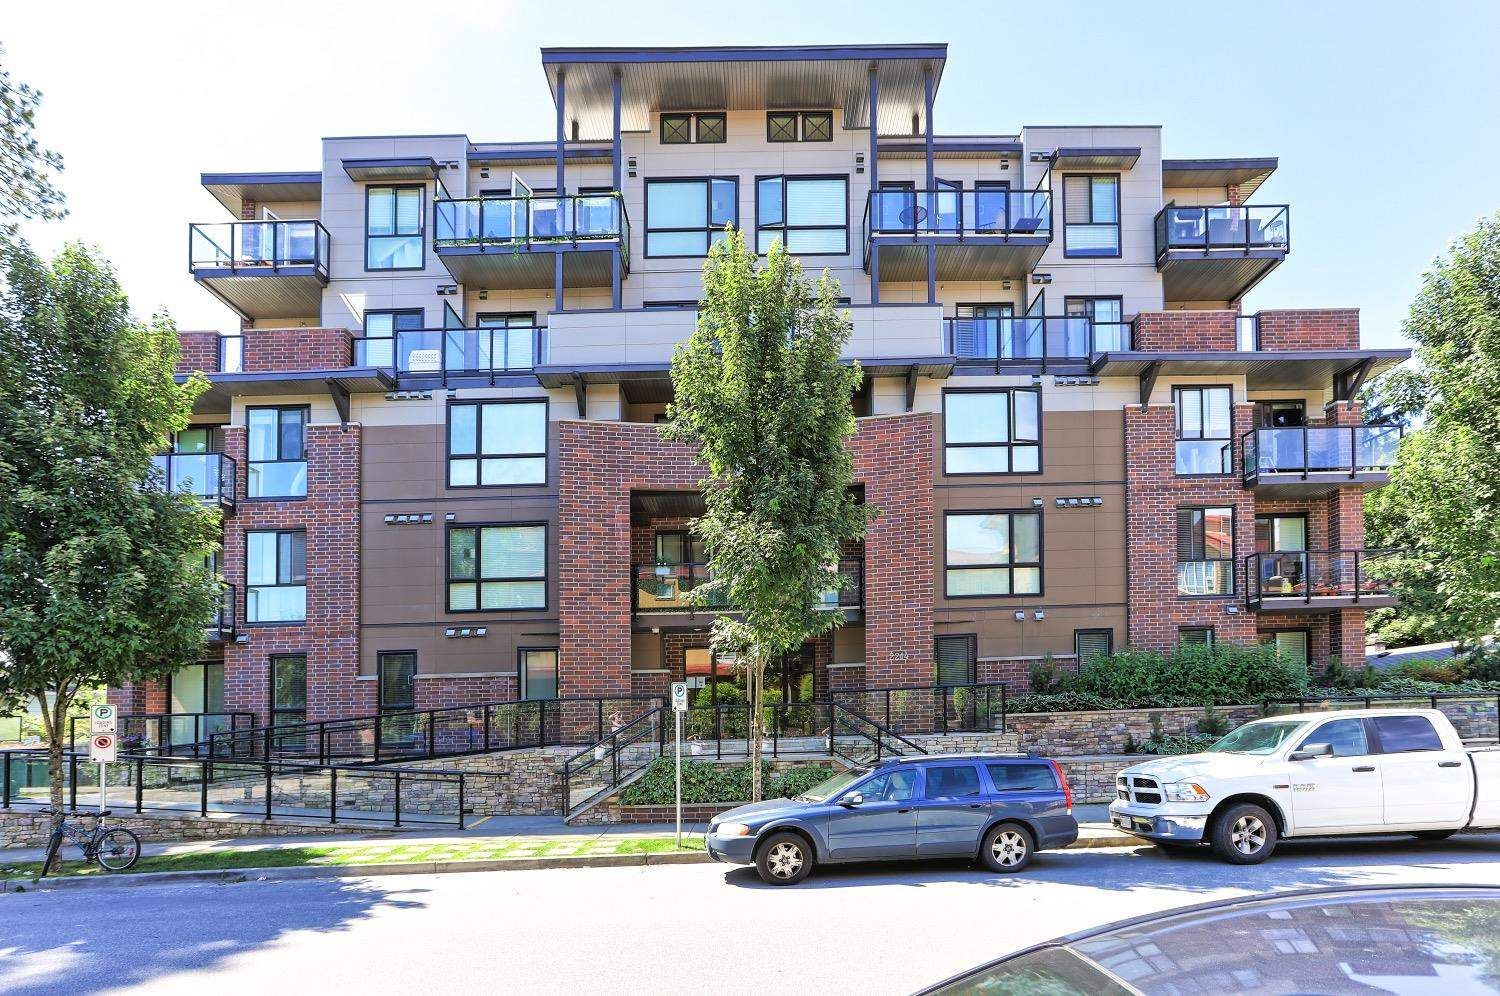 """Main Photo: 508 2214 KELLY Avenue in Port Coquitlam: Central Pt Coquitlam Condo for sale in """"SPRING"""" : MLS®# R2596495"""